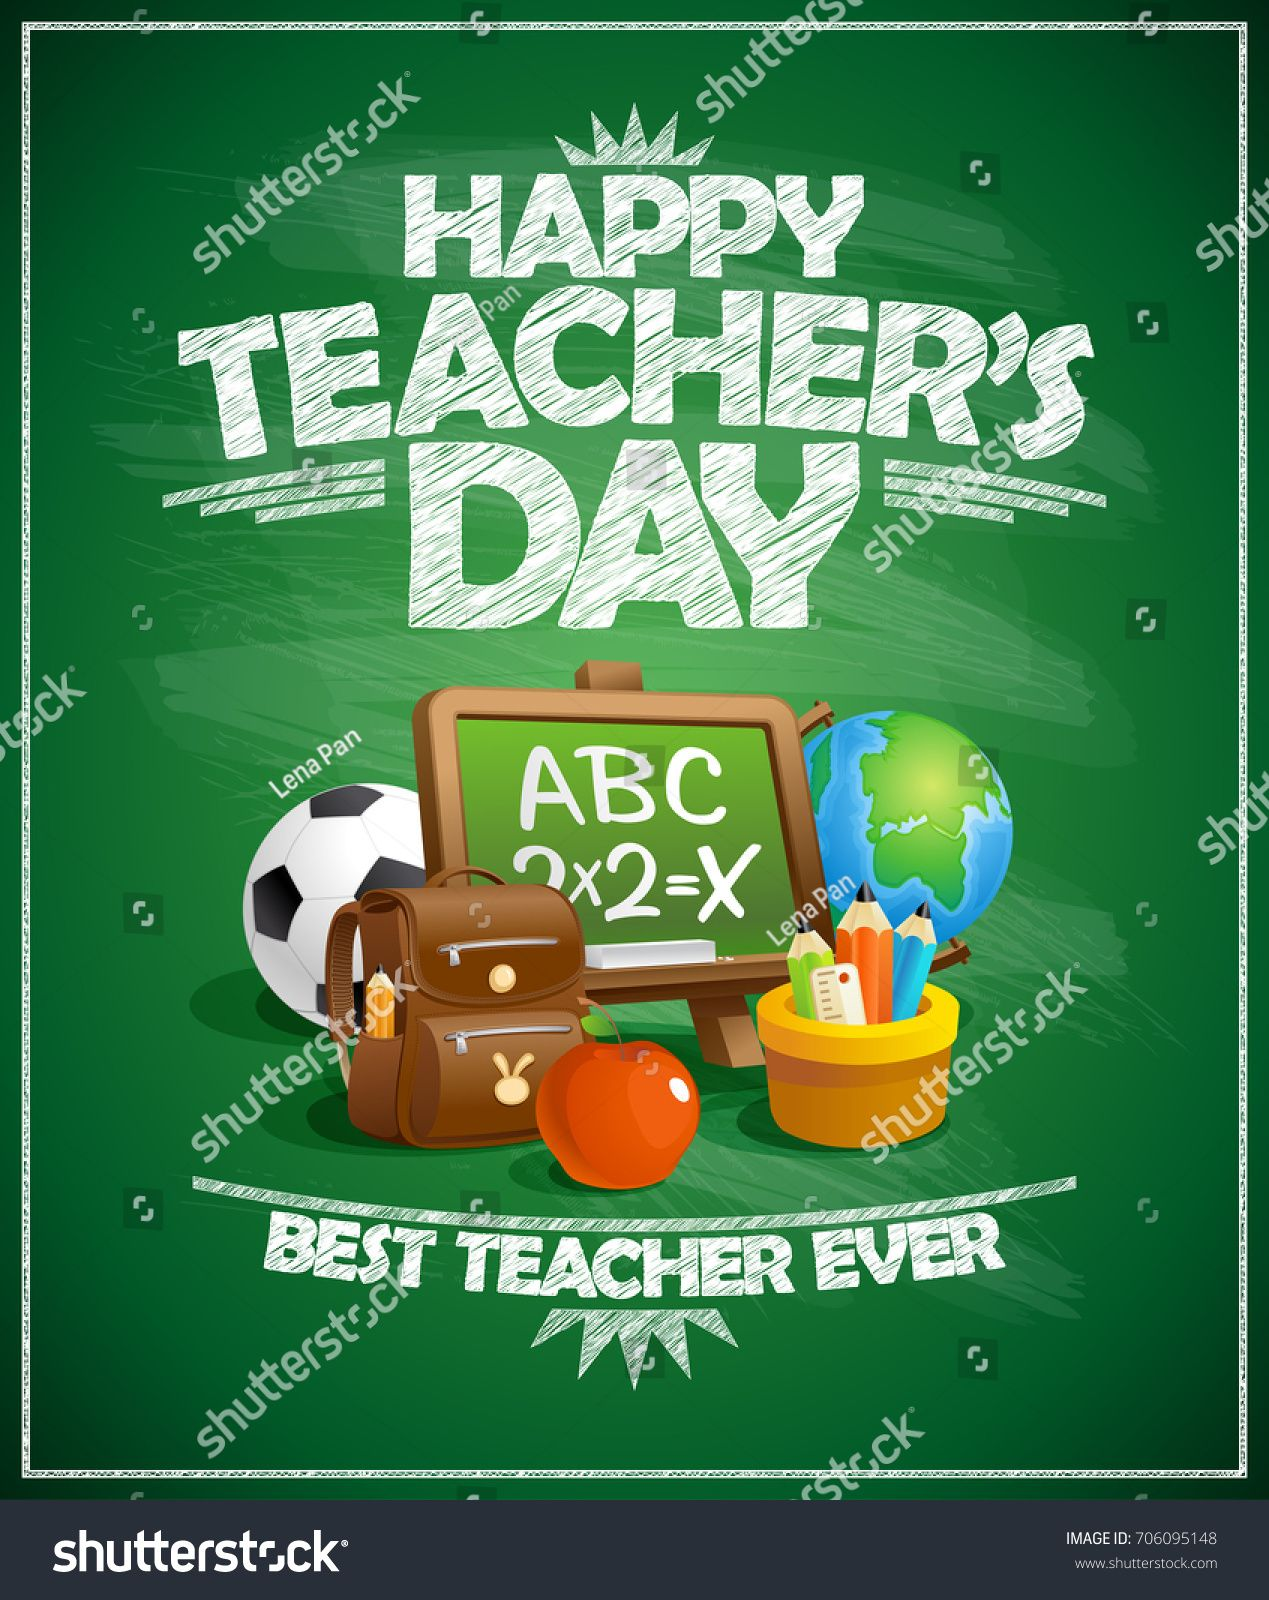 Teach From The Heart Square Sticker Zazzle Com In 2020 Teachers Day Wishes Happy Teachers Day Wishes Happy Teachers Day Card